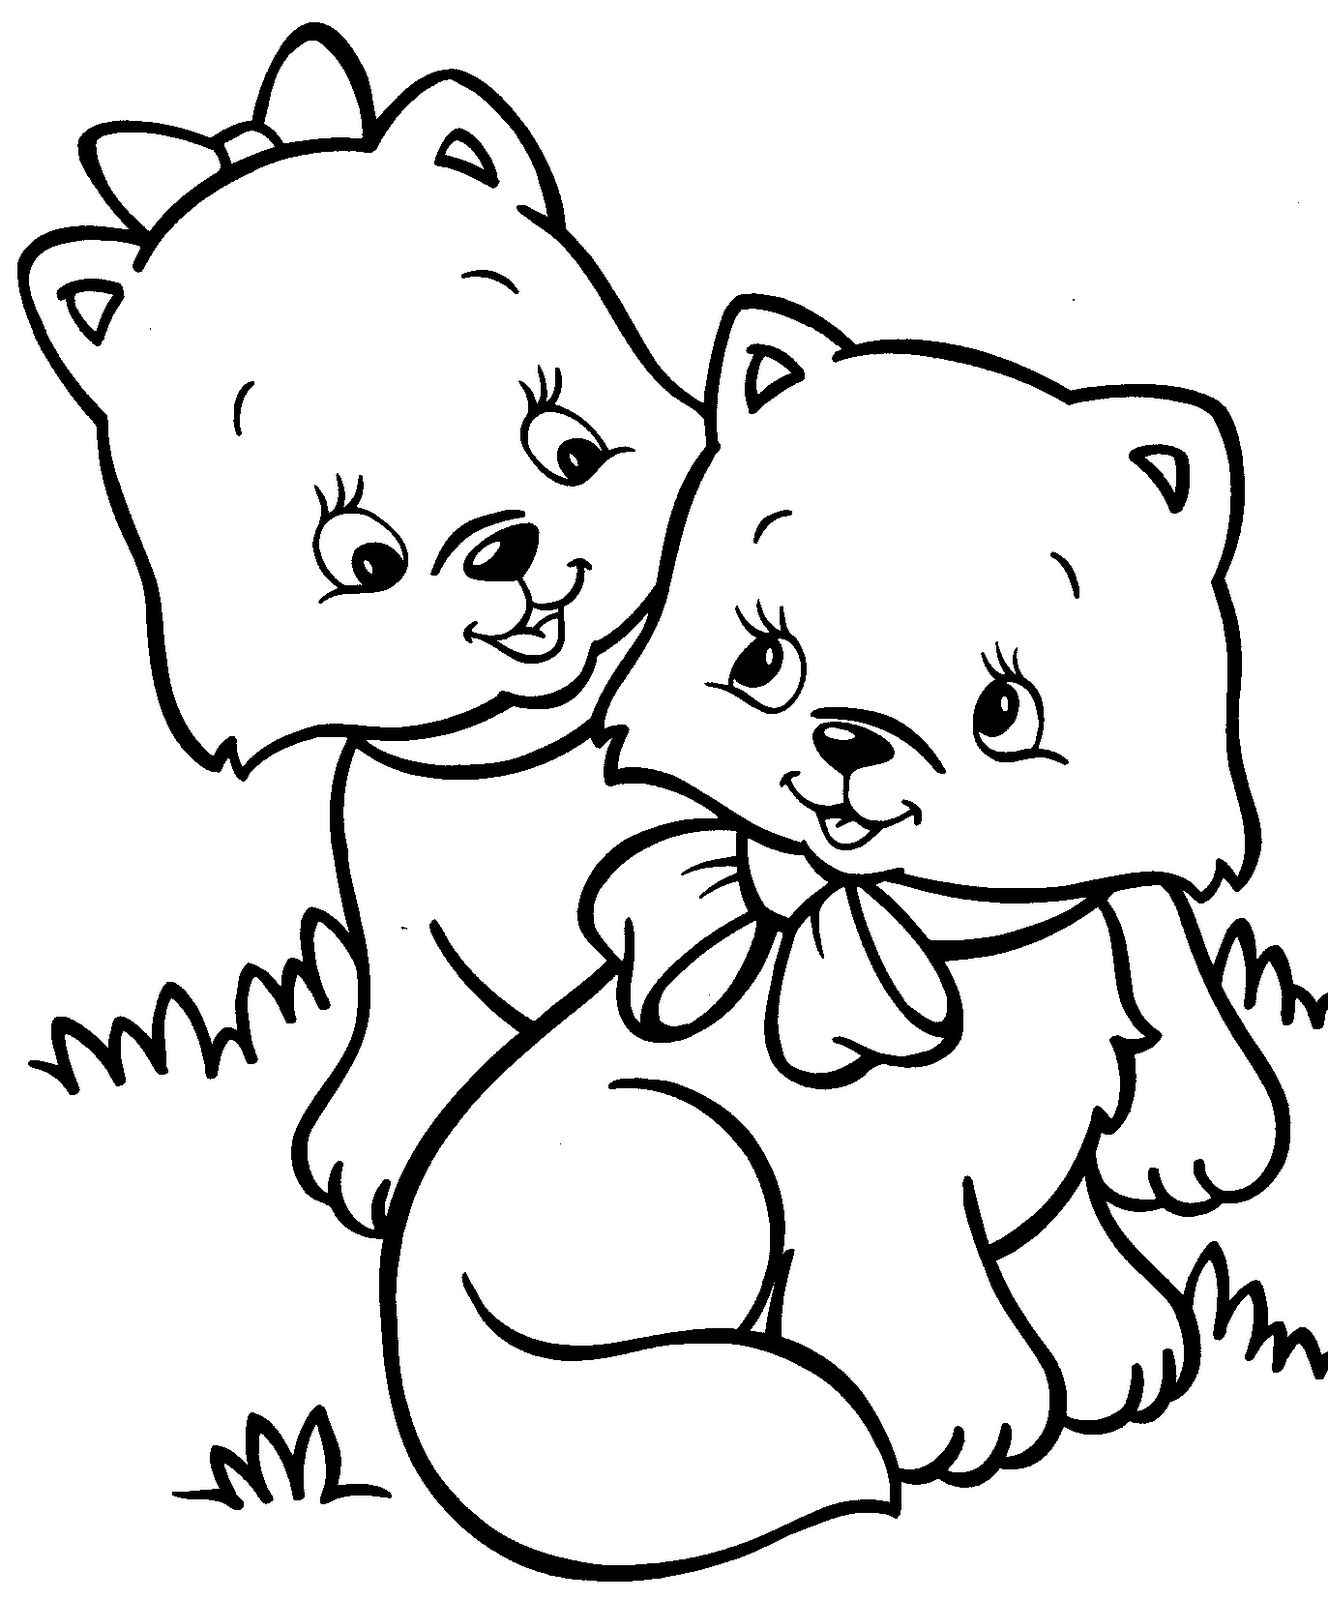 kids coloring pages kitten kitten coloring pages best coloring pages for kids kids pages kitten coloring